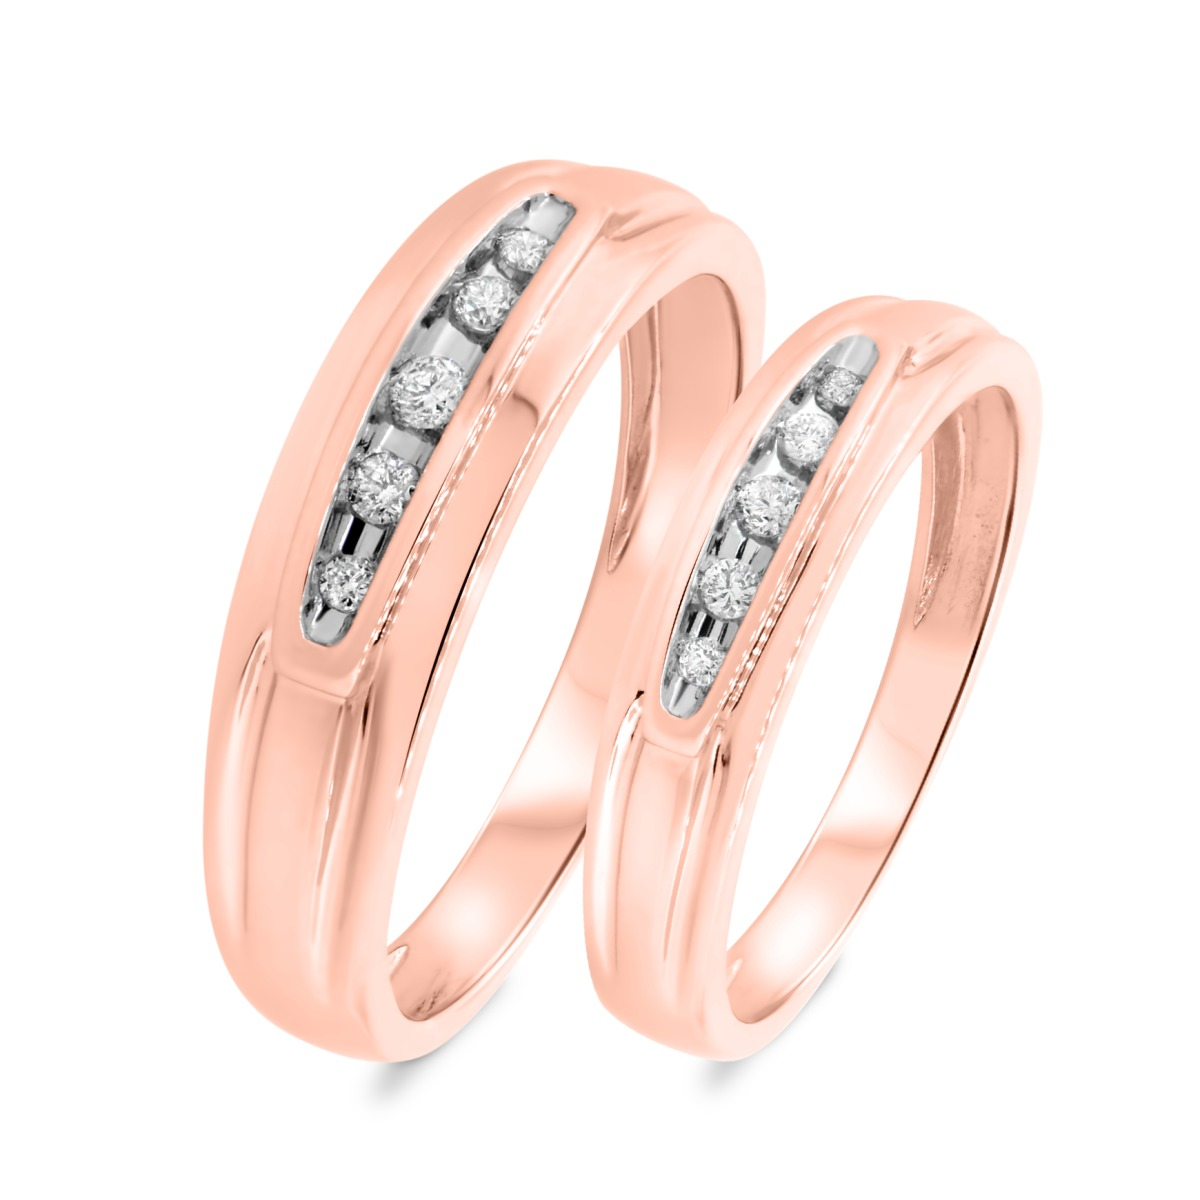 1/5 CT. T.W. Diamond Matching Wedding Band Set 10K Rose Gold